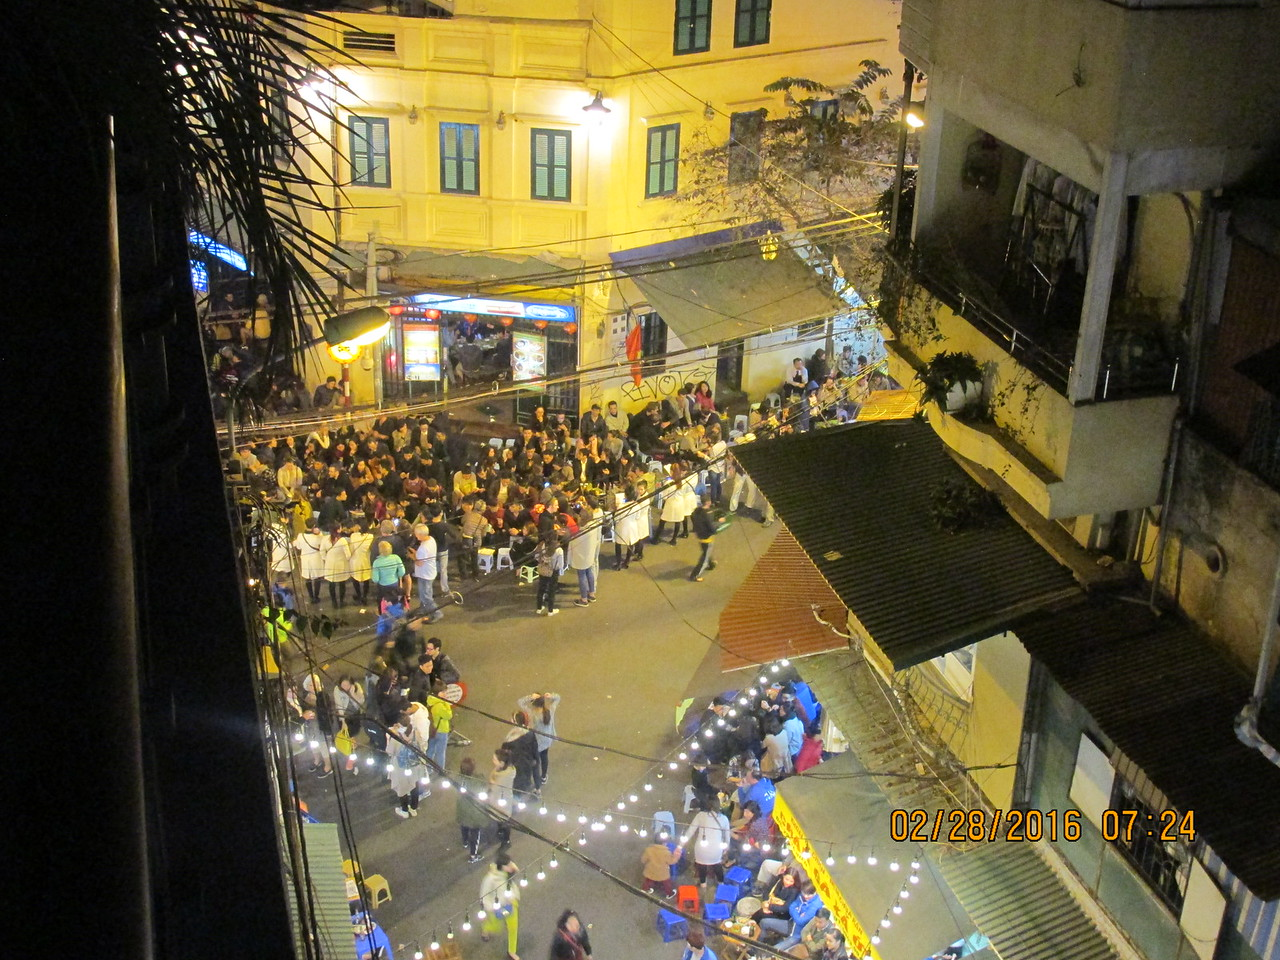 0094 - View from Balcony of Essence d'Orient Hotel overlooking Ta Hiem St in Old Quarter - Hanoi Vietnam - Date Correct but Time on Pic is Wrong